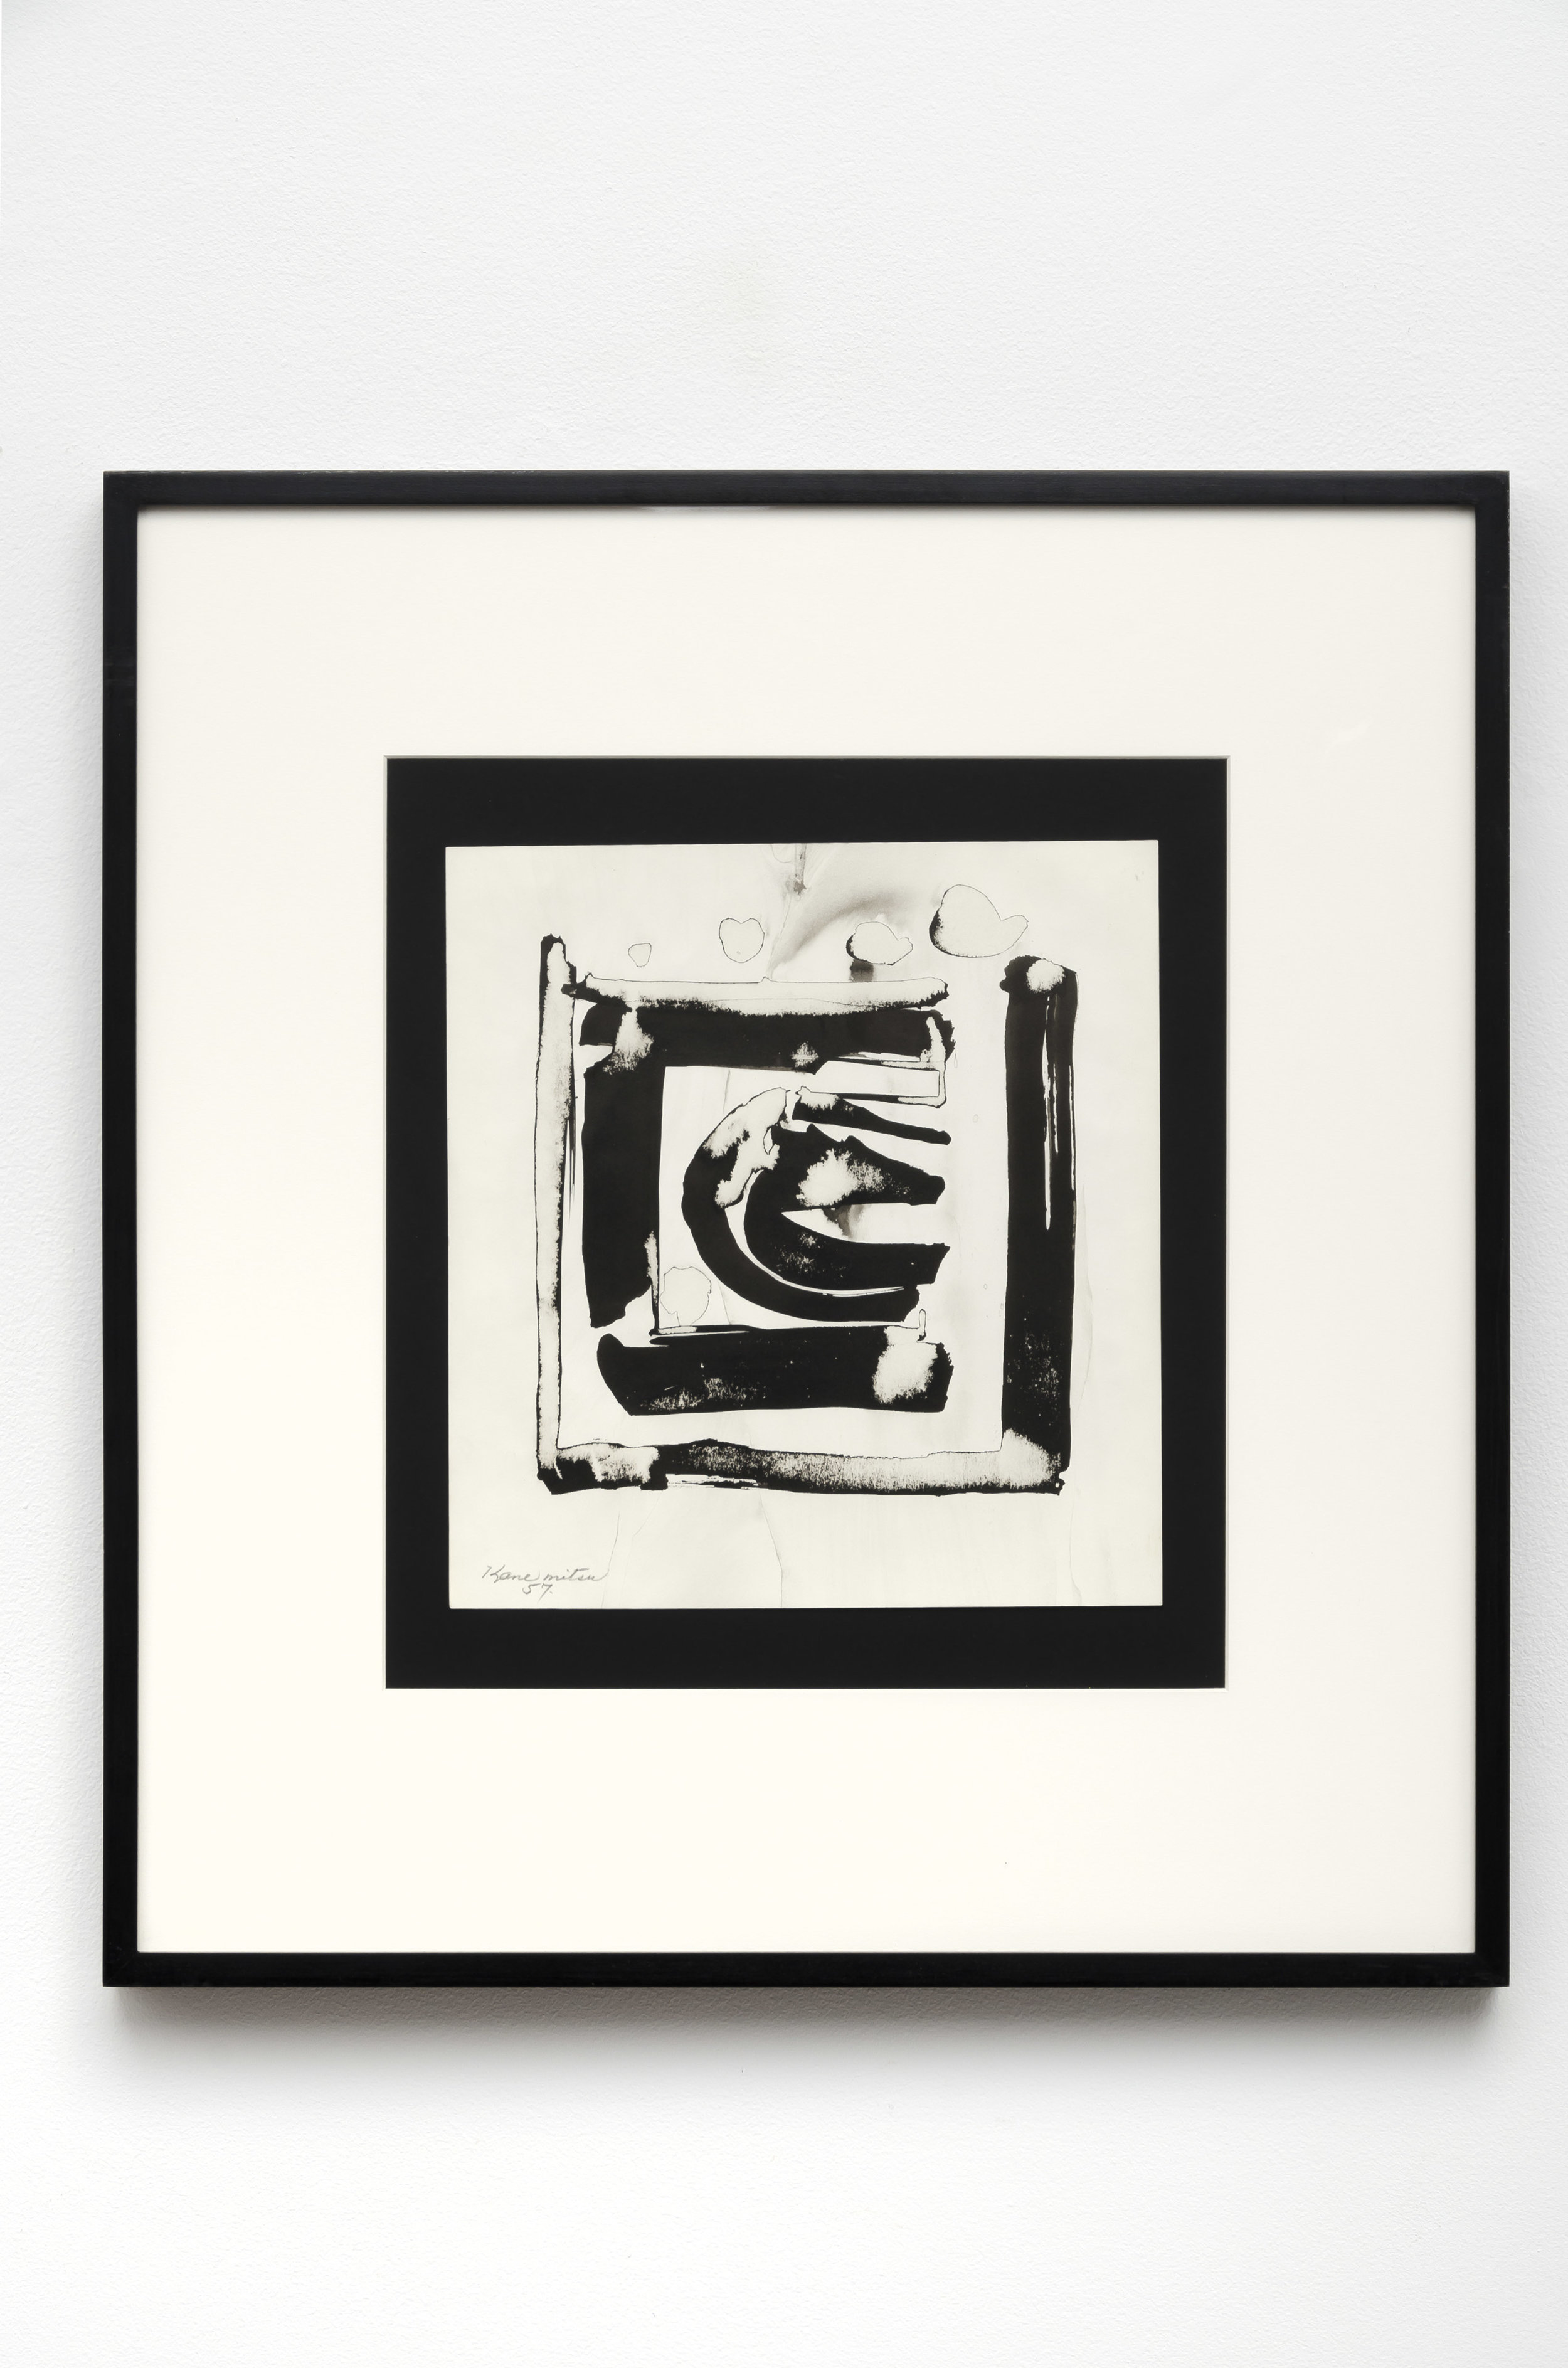 Study for Window , 1957 sumi ink on paper 23.75 x 21.75 inches; 60.3 x 55.2 centimeters